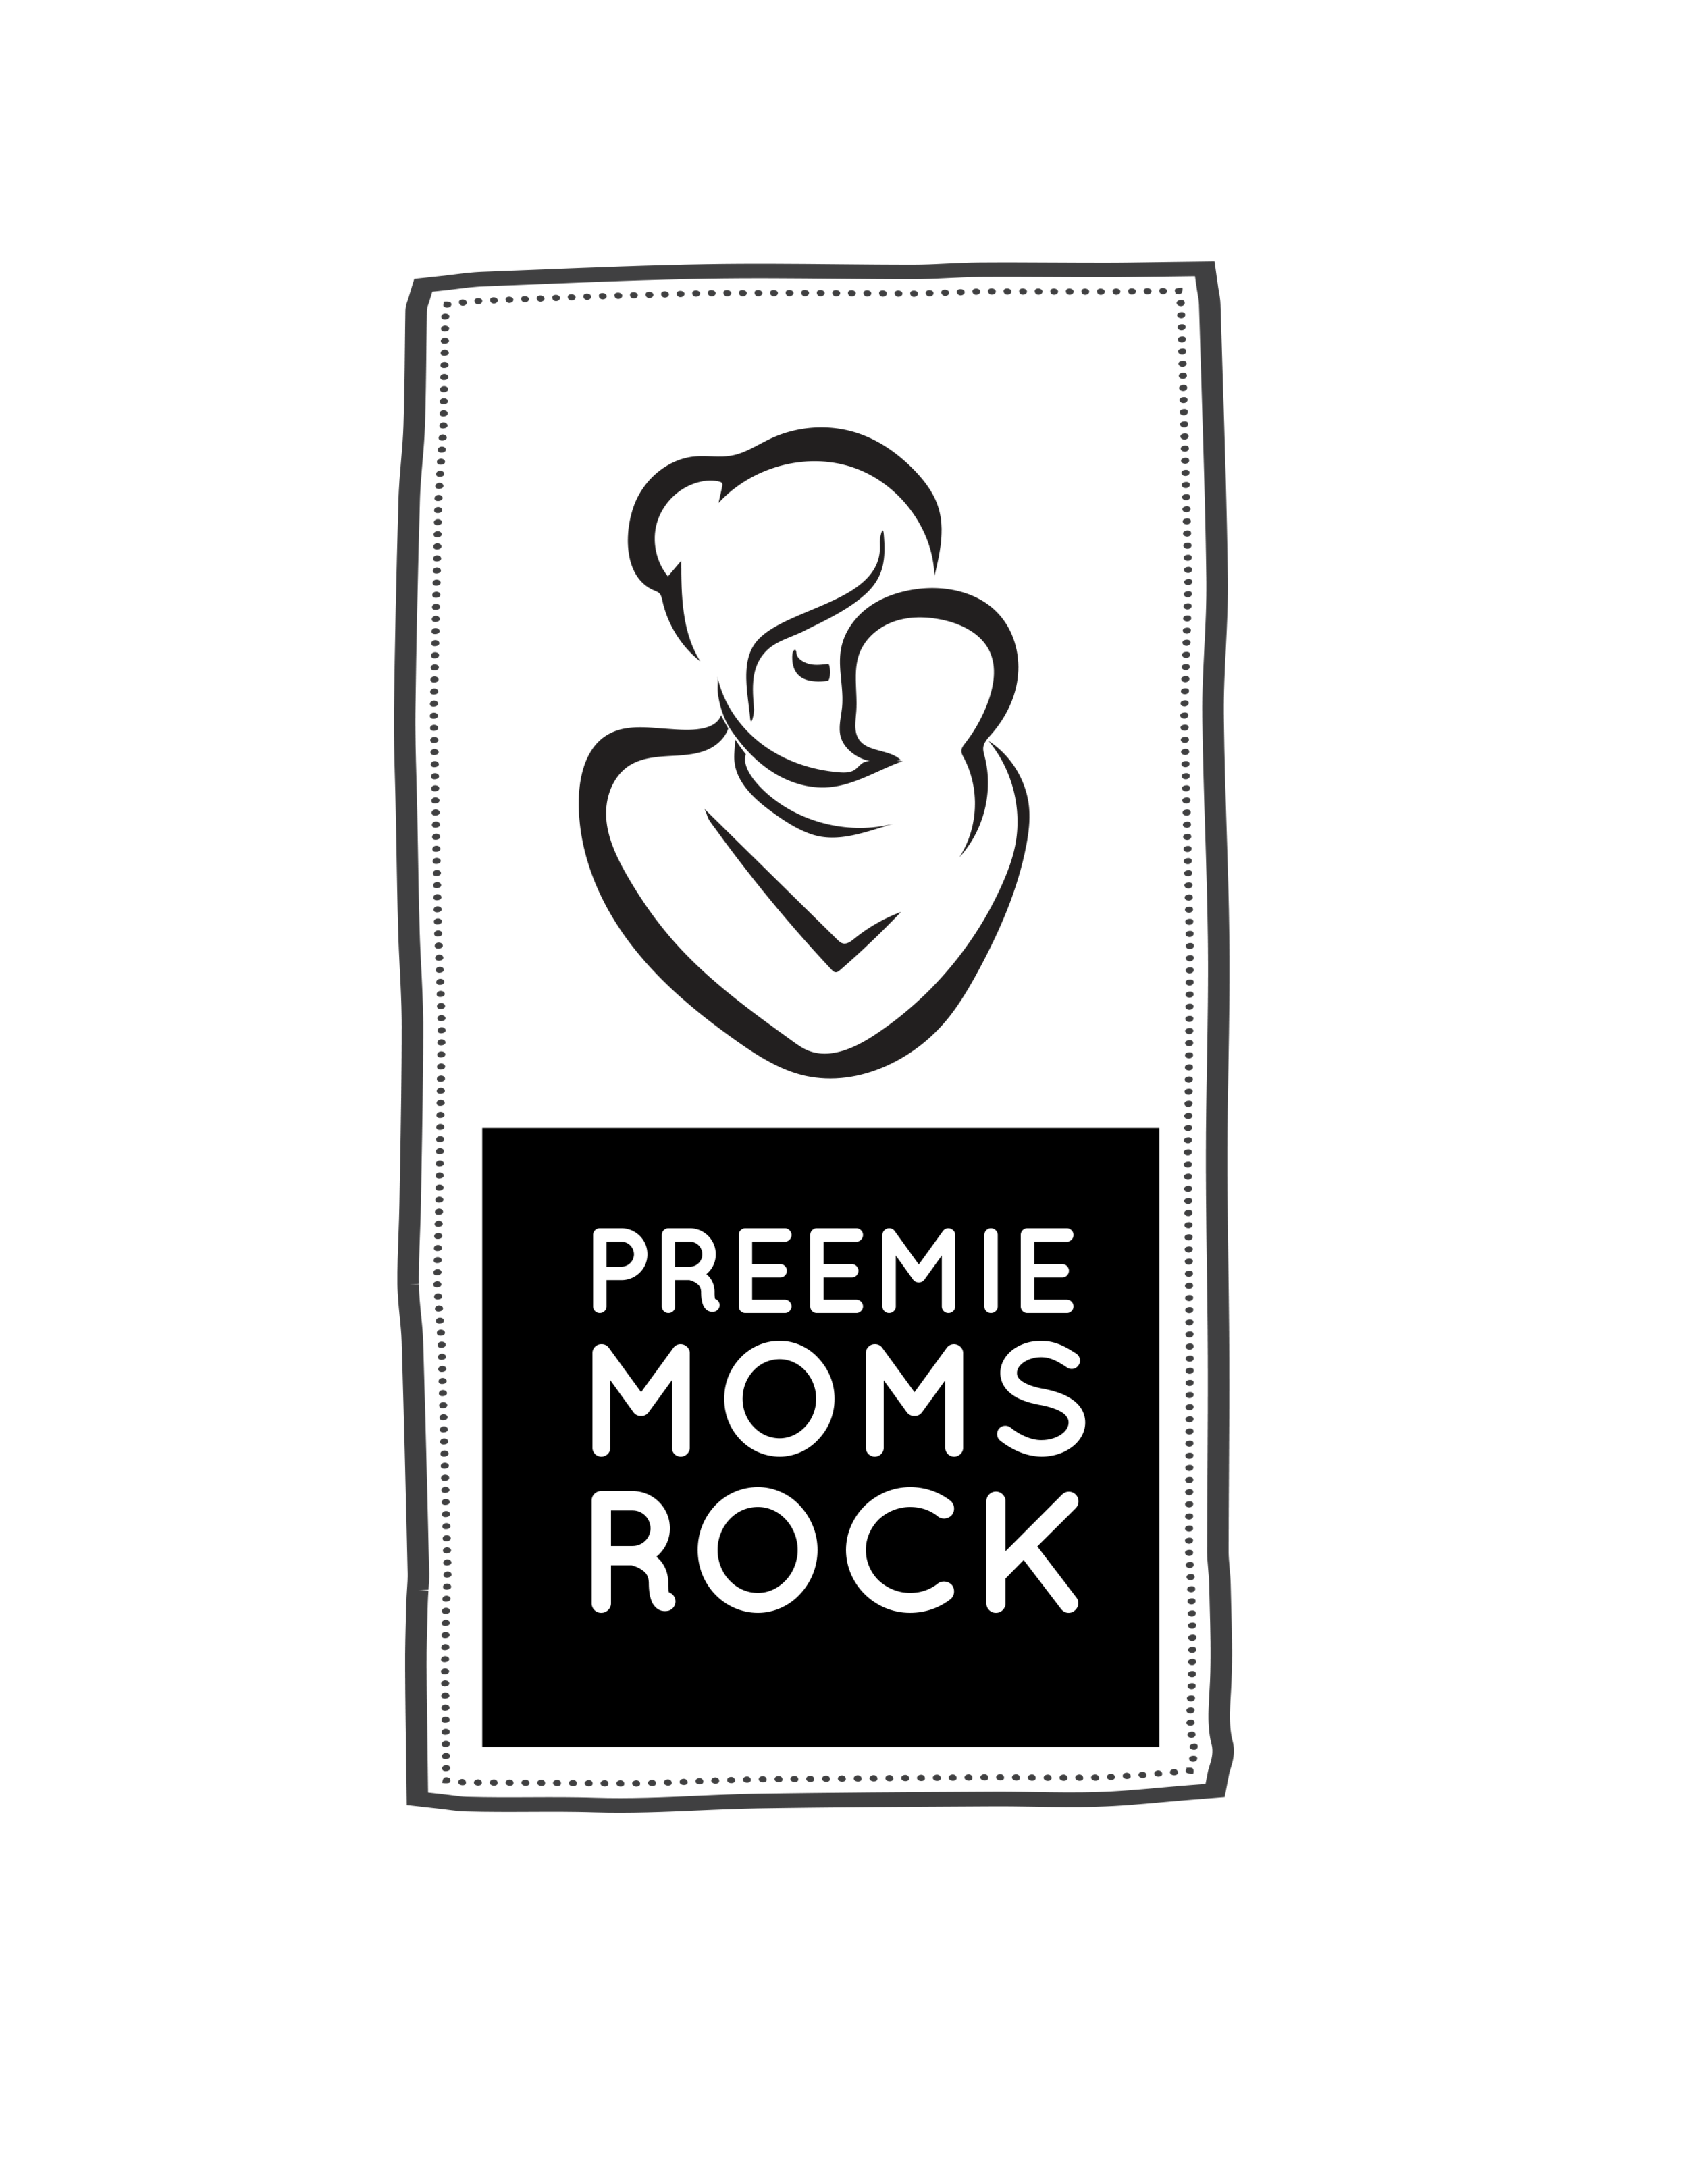 Preemie Moms Rock!